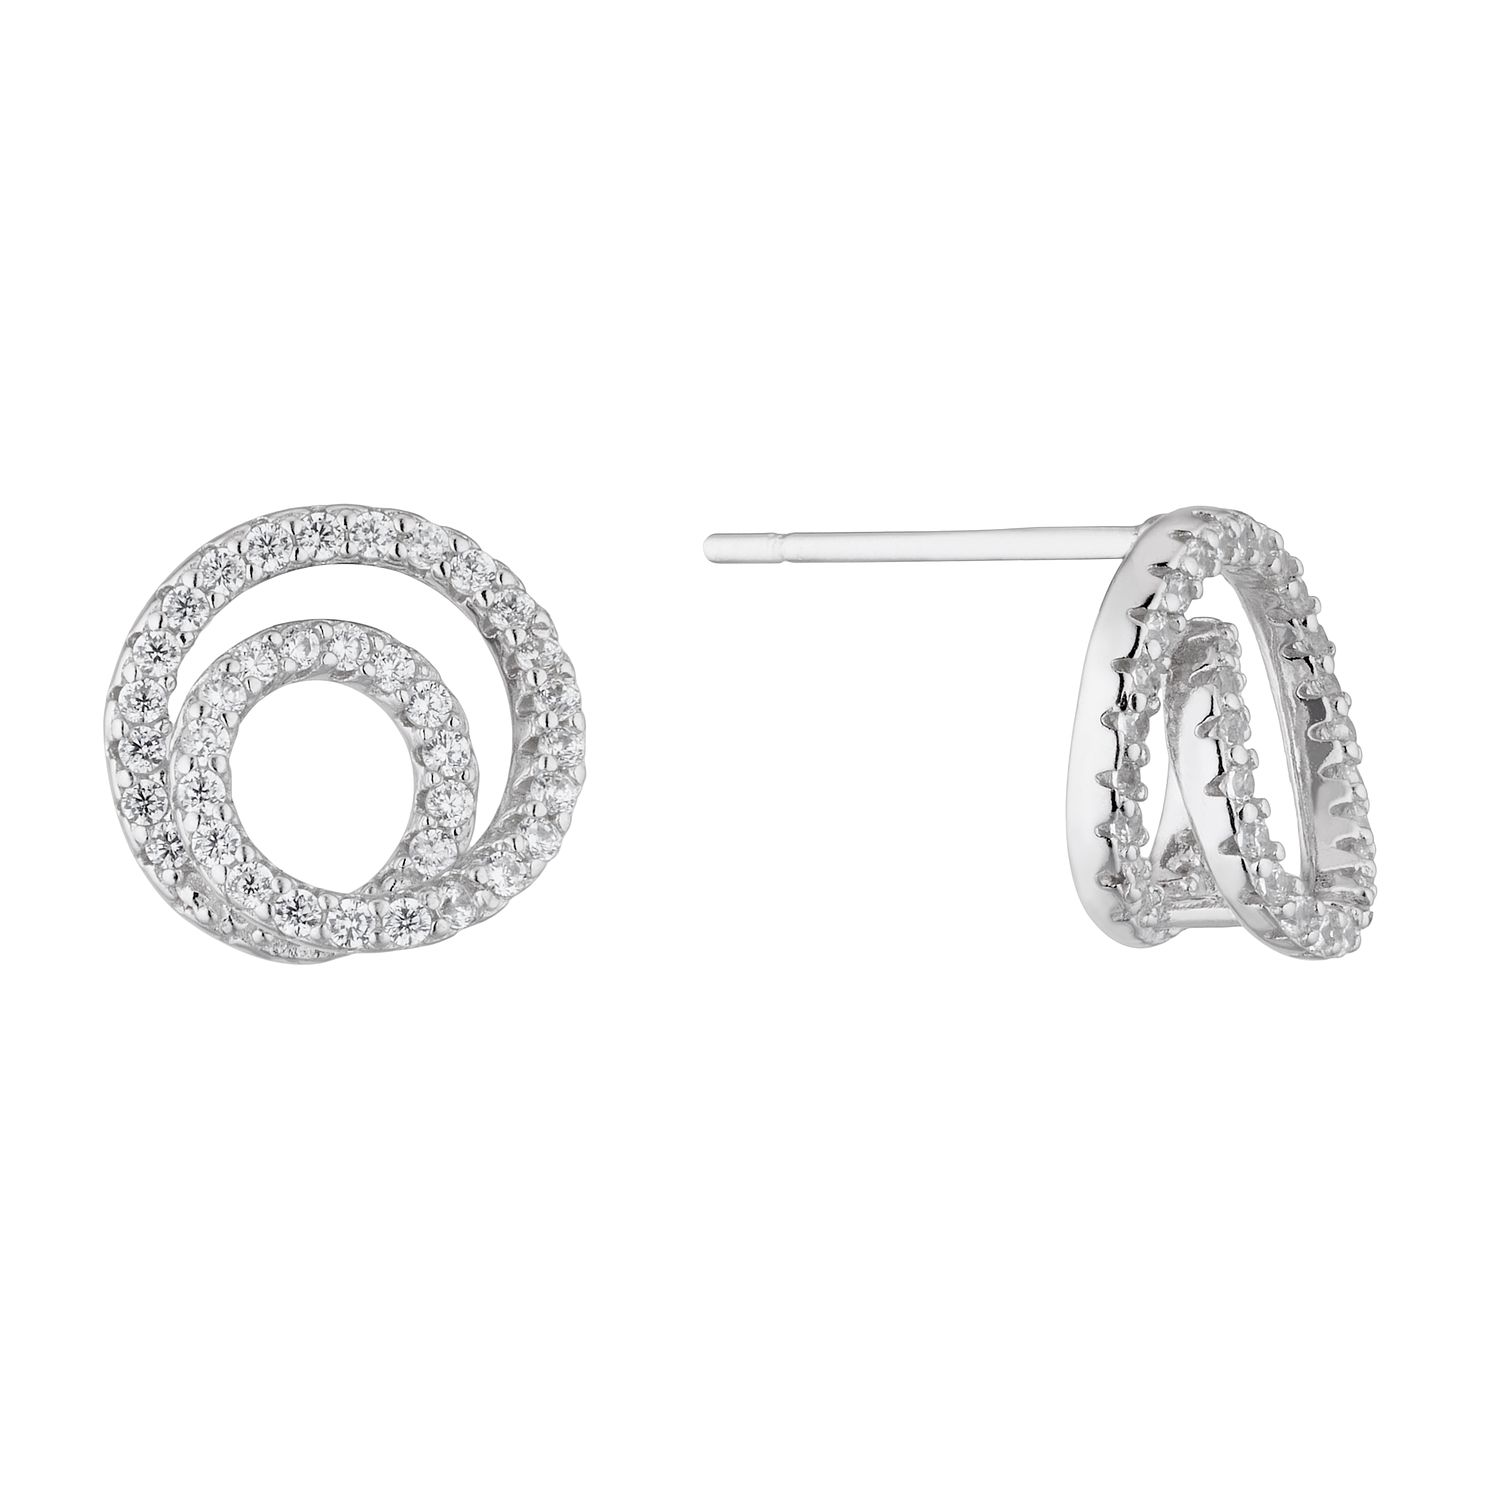 Silver Double Circle Cubic Zirconia Stud Earrings - Product number 4827961